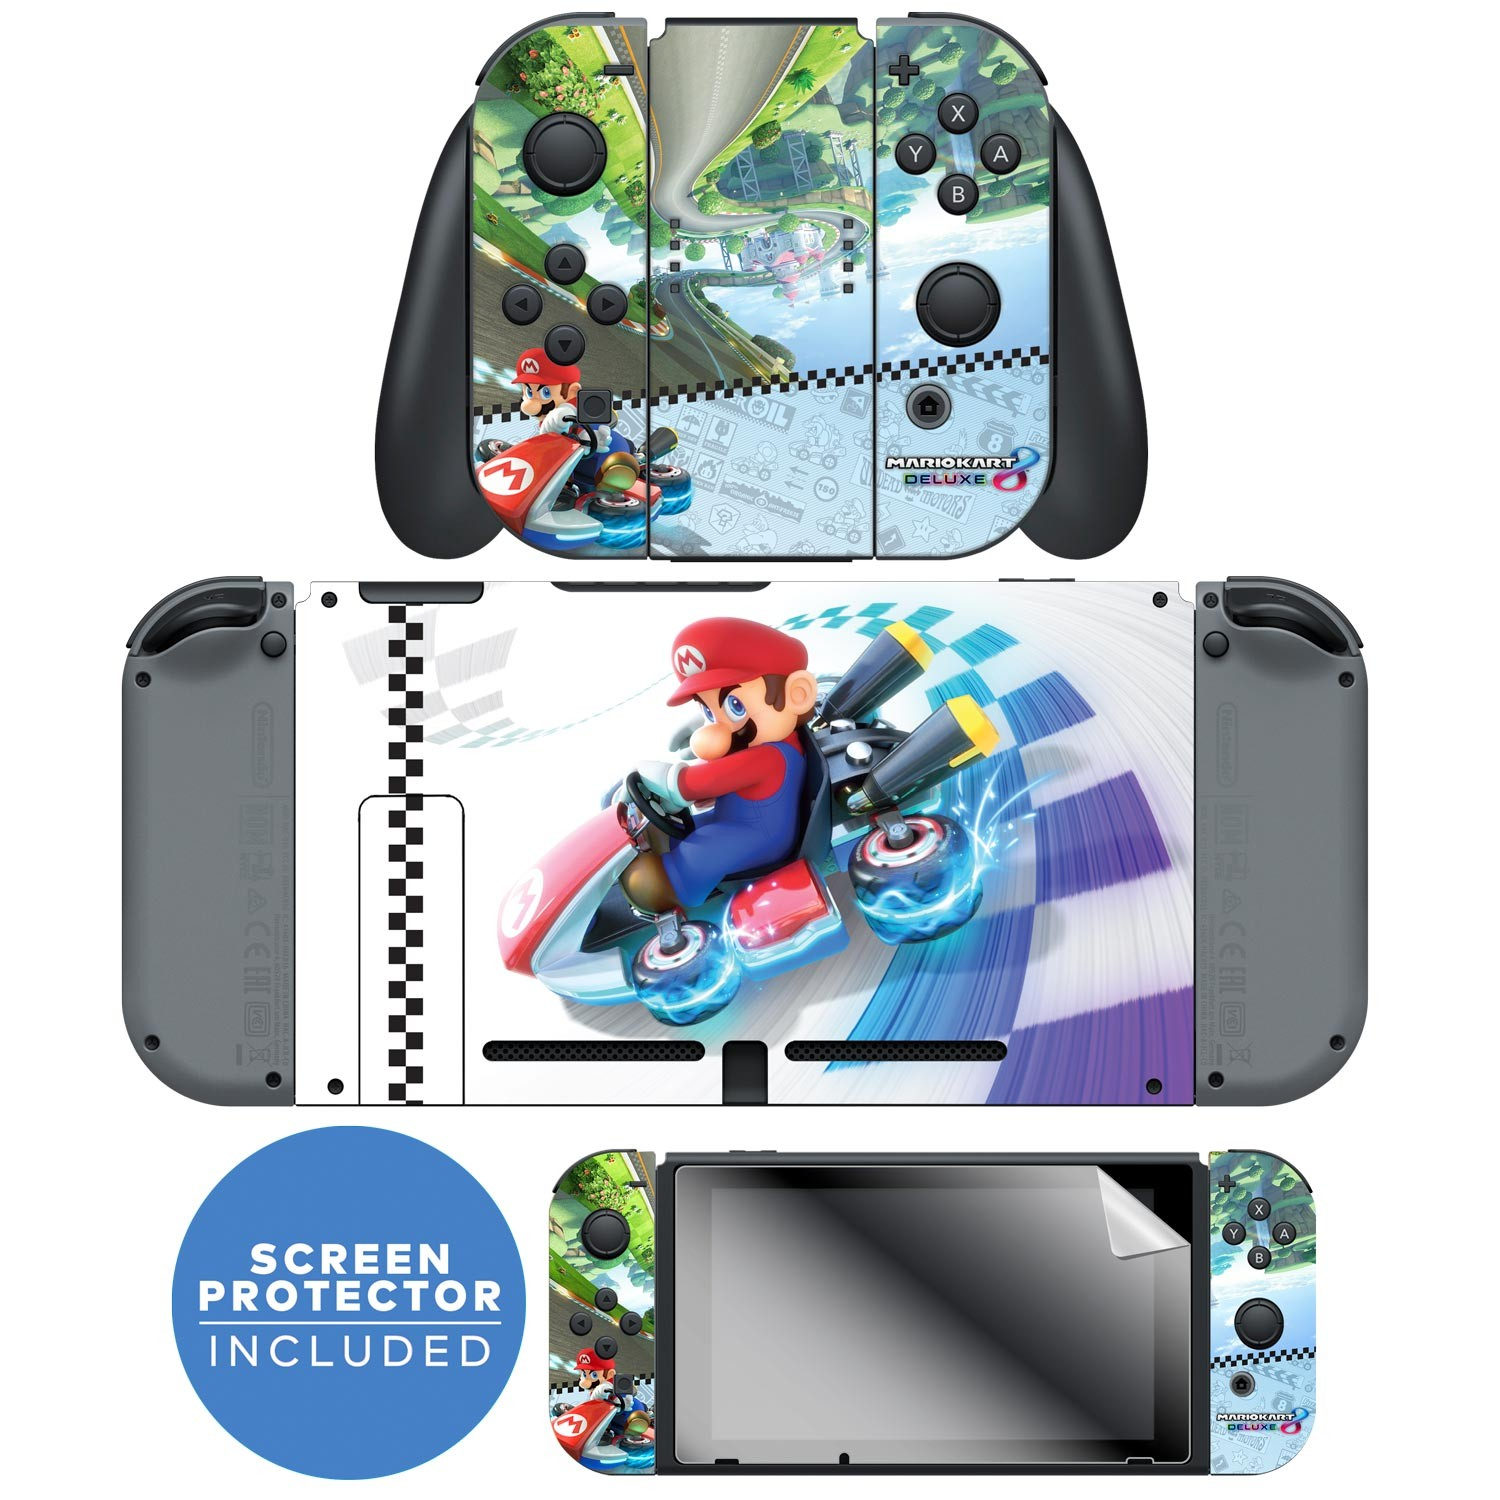 ccb945606e Nintendo Switch™ Skin   Screen Protector Set Officially Licensed by Nintendo  - Super Mario™ Kart ...